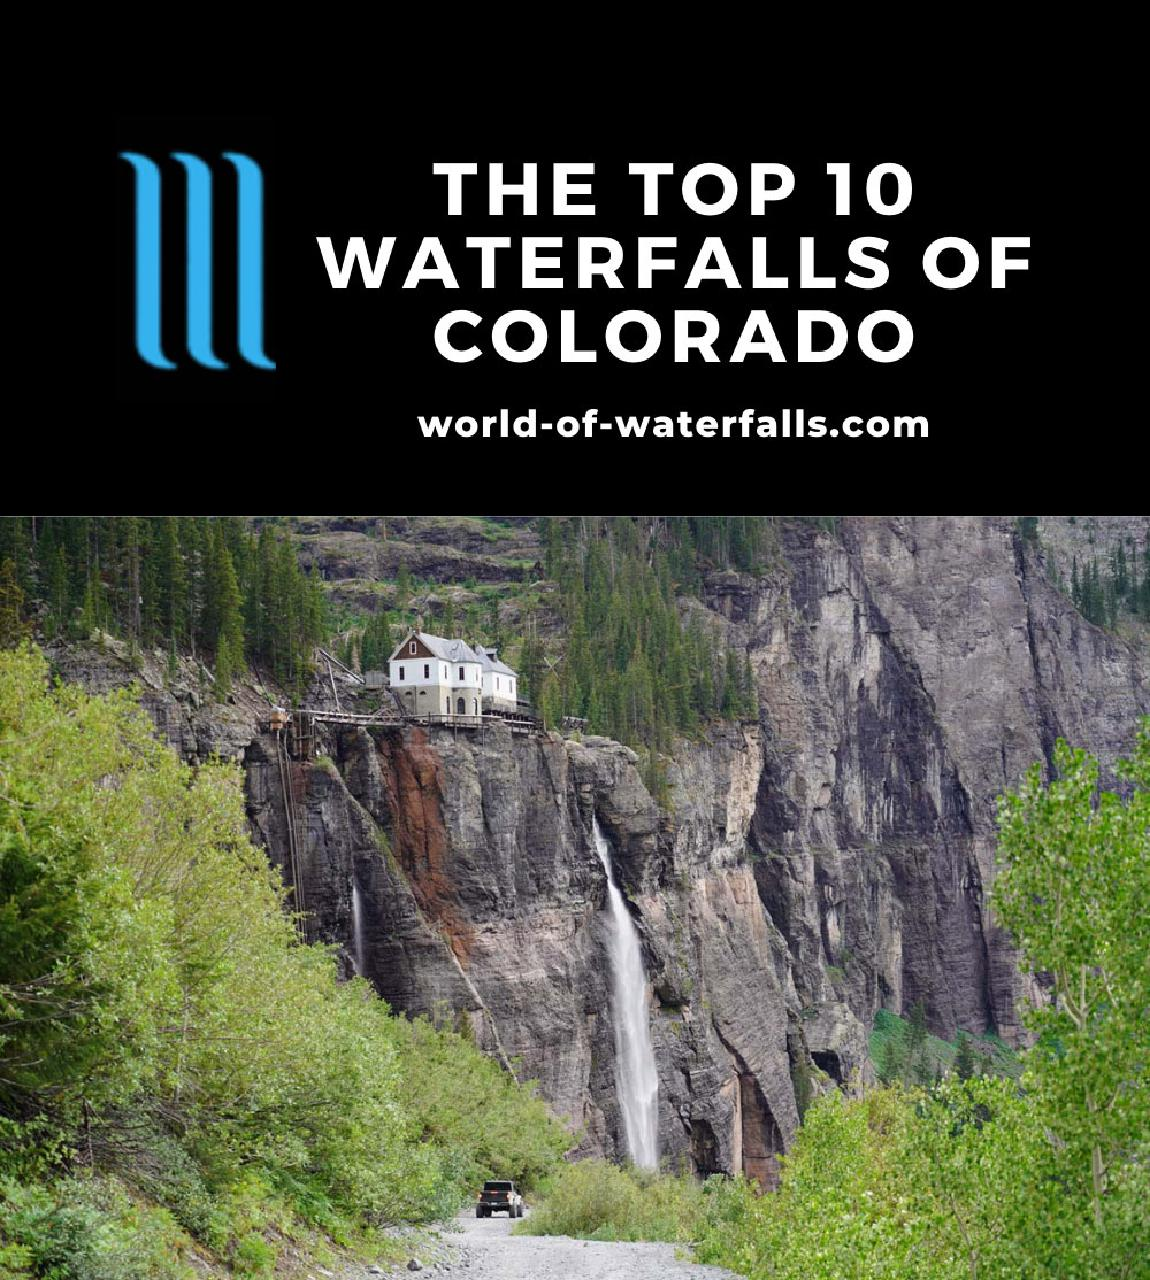 The Top 10 Waterfalls of Colorado